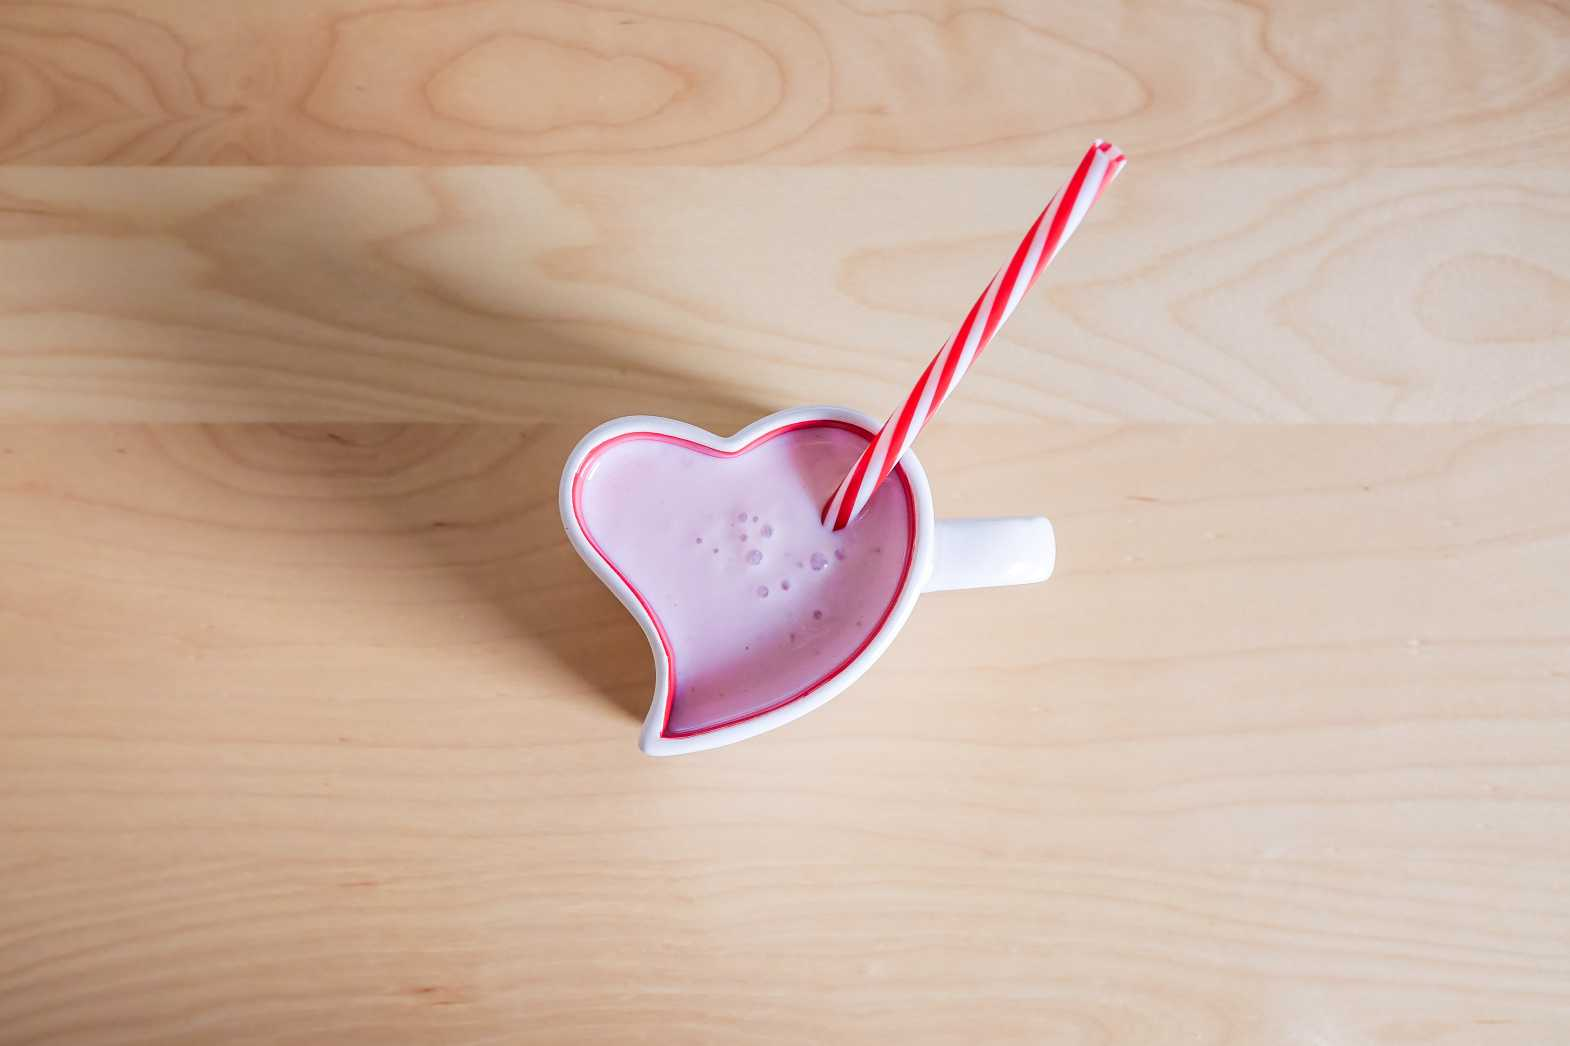 strawberry milkshake in lovely heart shaped cup free stock photos picjumbo.com  - Valentýnské fotografie zdarma – picjumbo.com